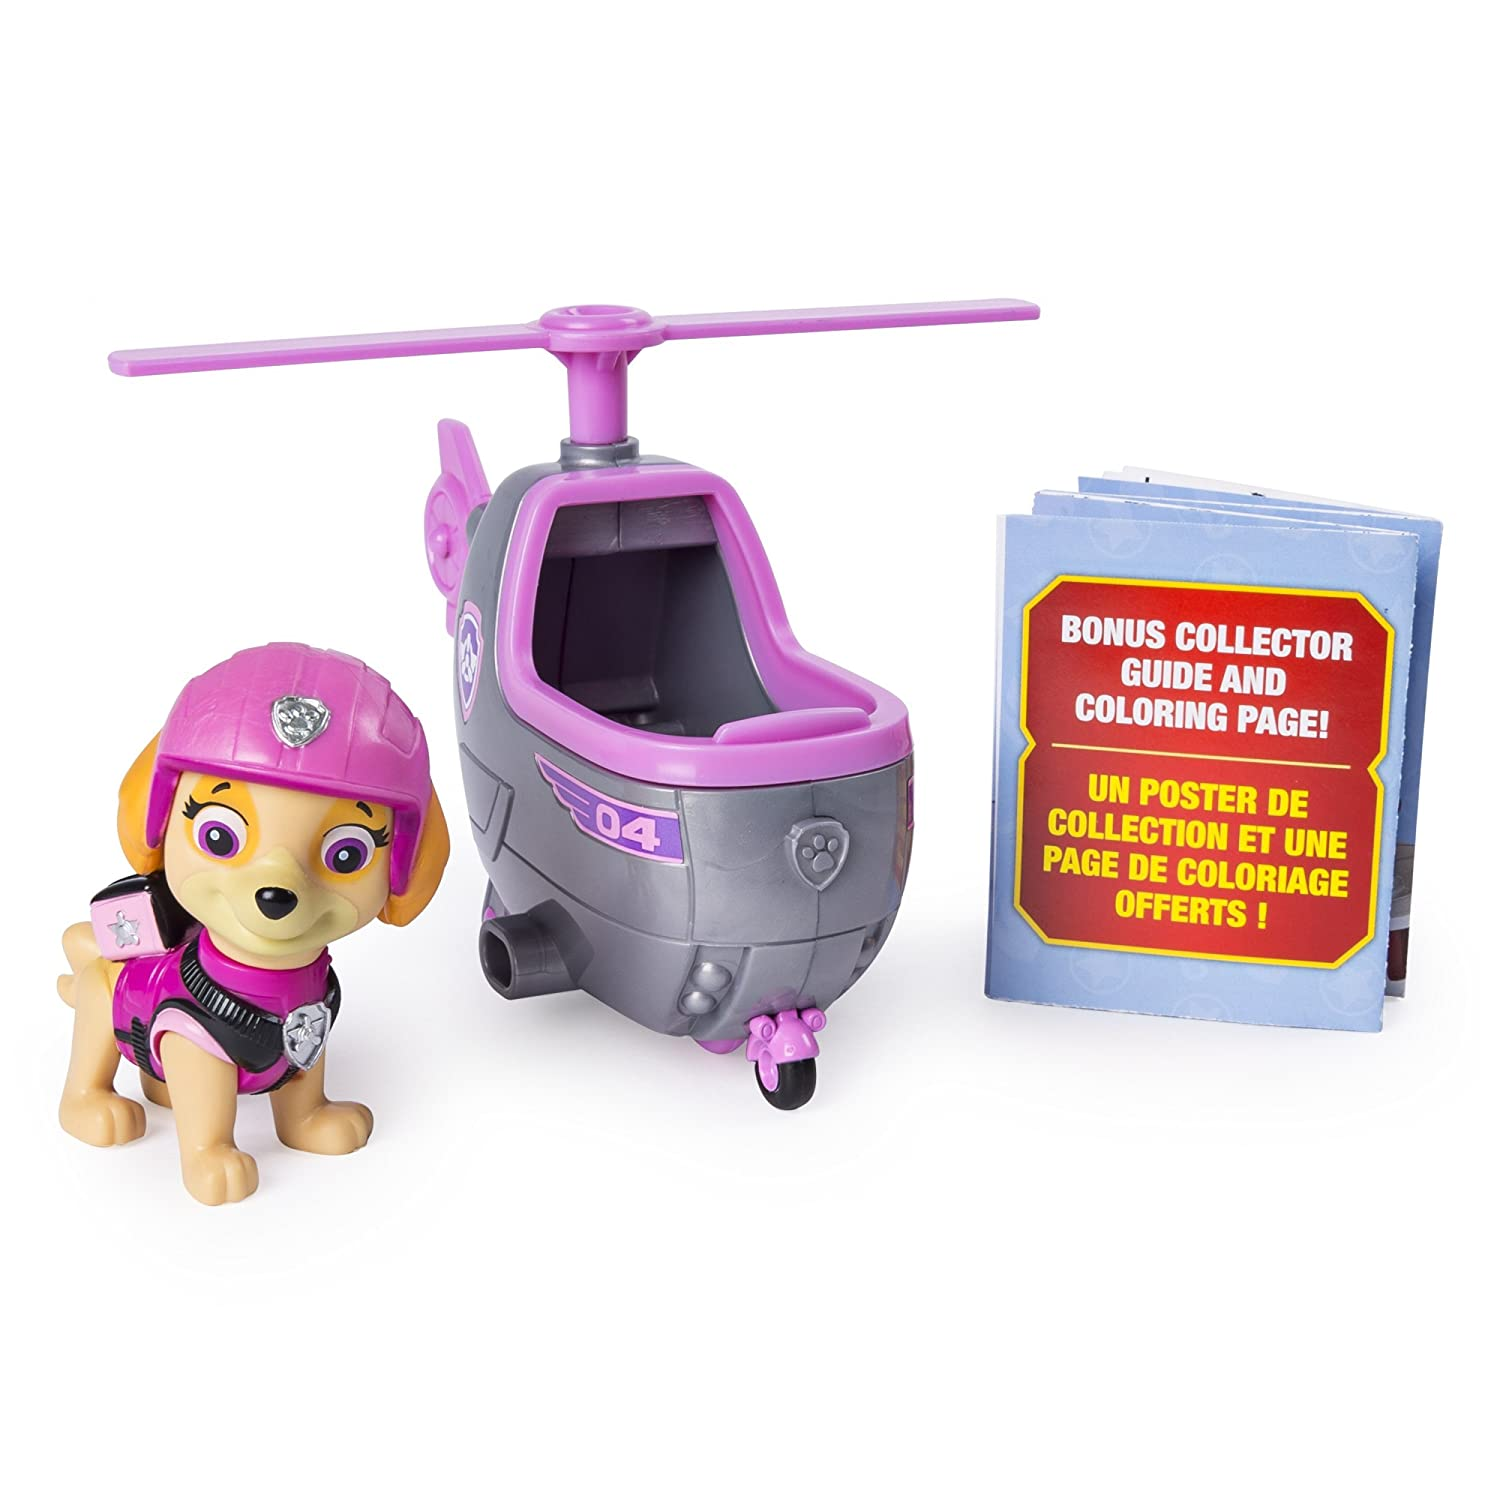 Paw Patrol 20101380-6046667 Ultimate Rescue, Skye'S Mini Helicopter with Collectible Figure, for Ages 3 and Up